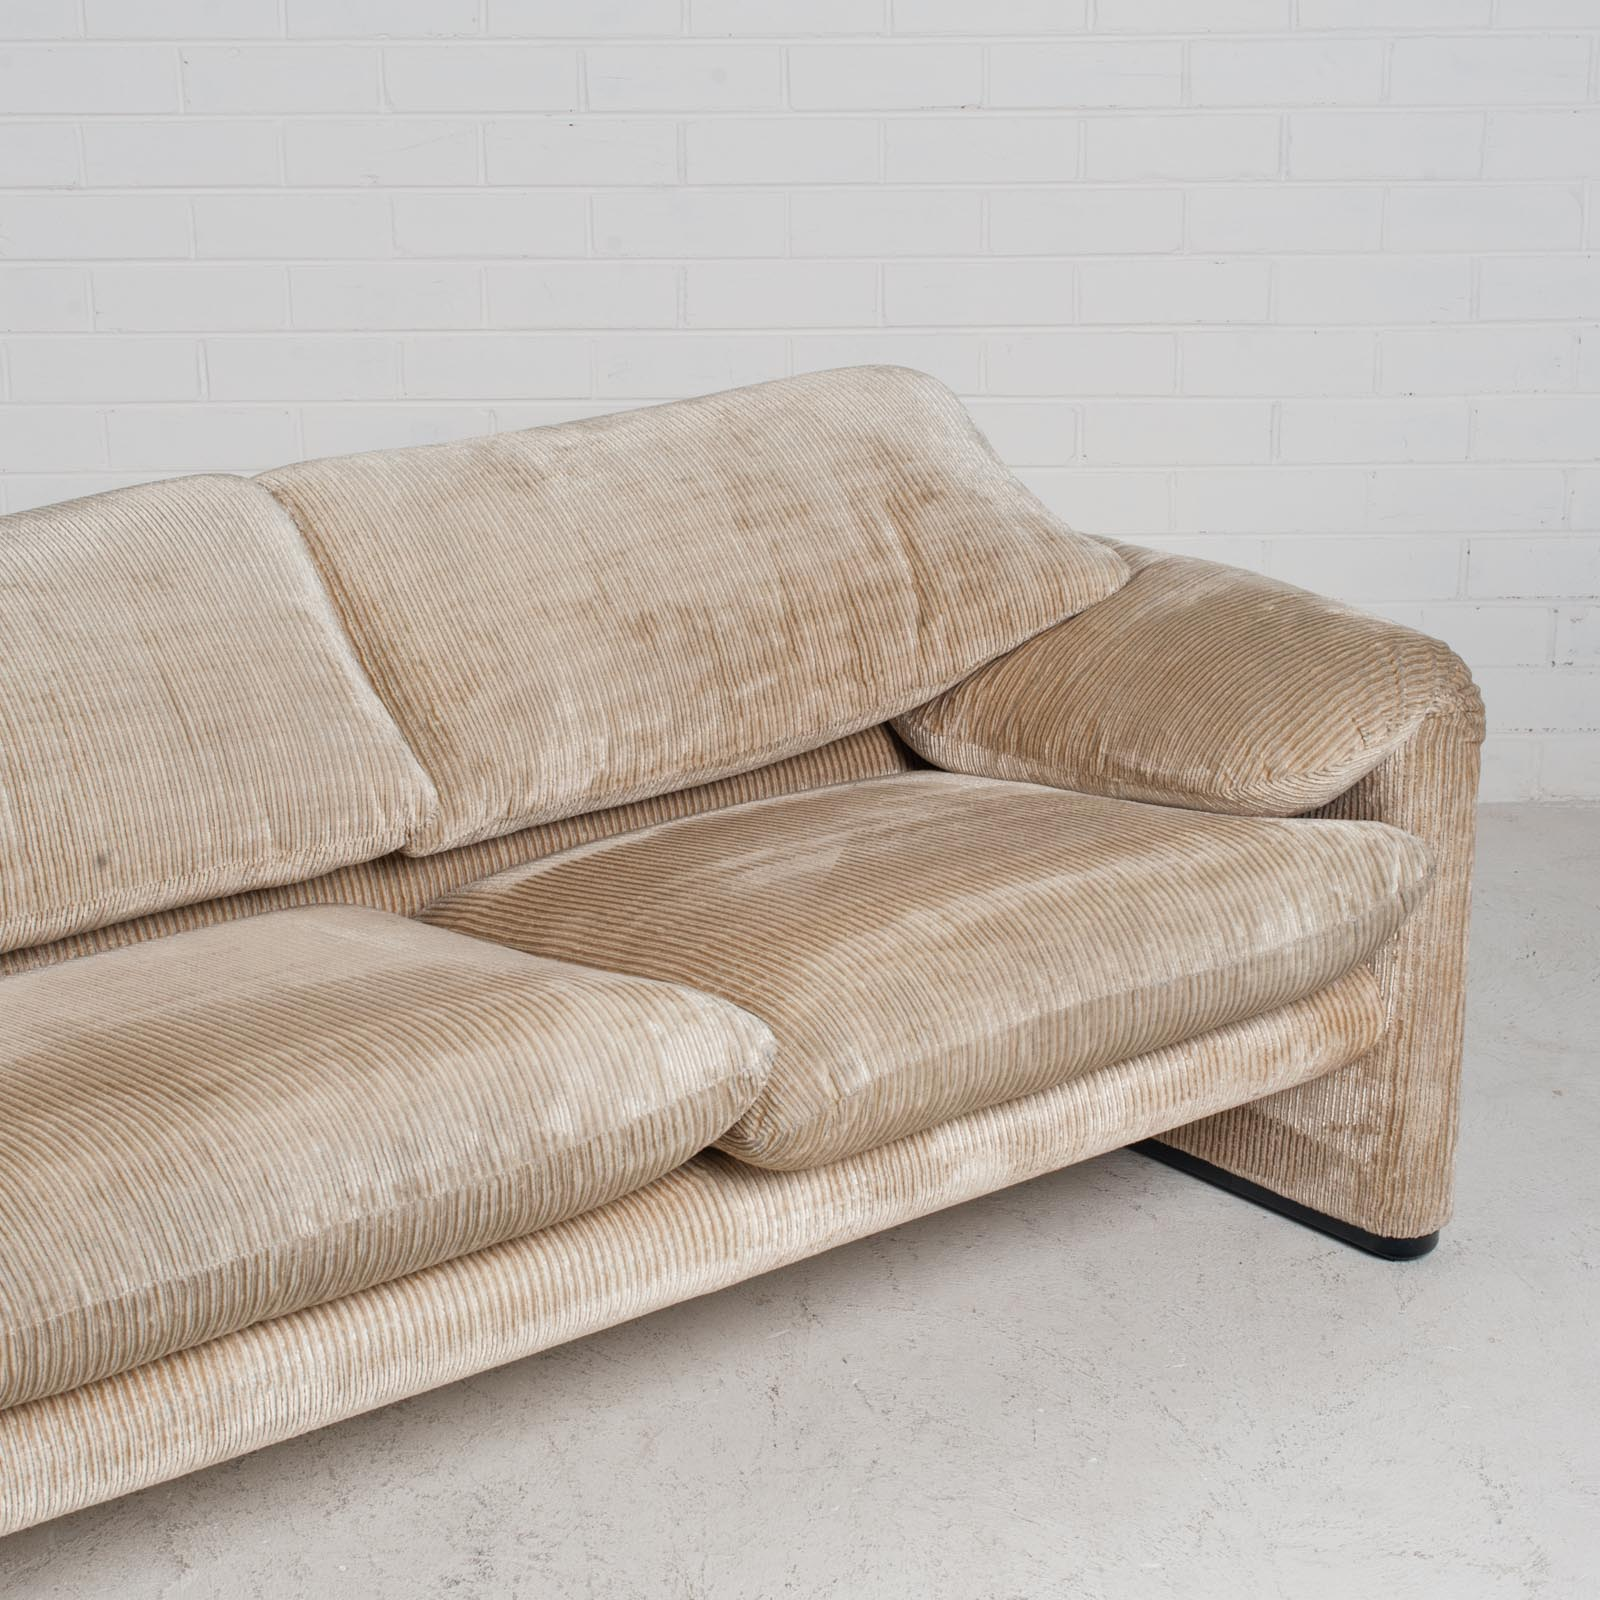 Maralunga 3 Seat Sofa By Vico Magistretti For Cassina In Original Upholstery 1970s Italy 010